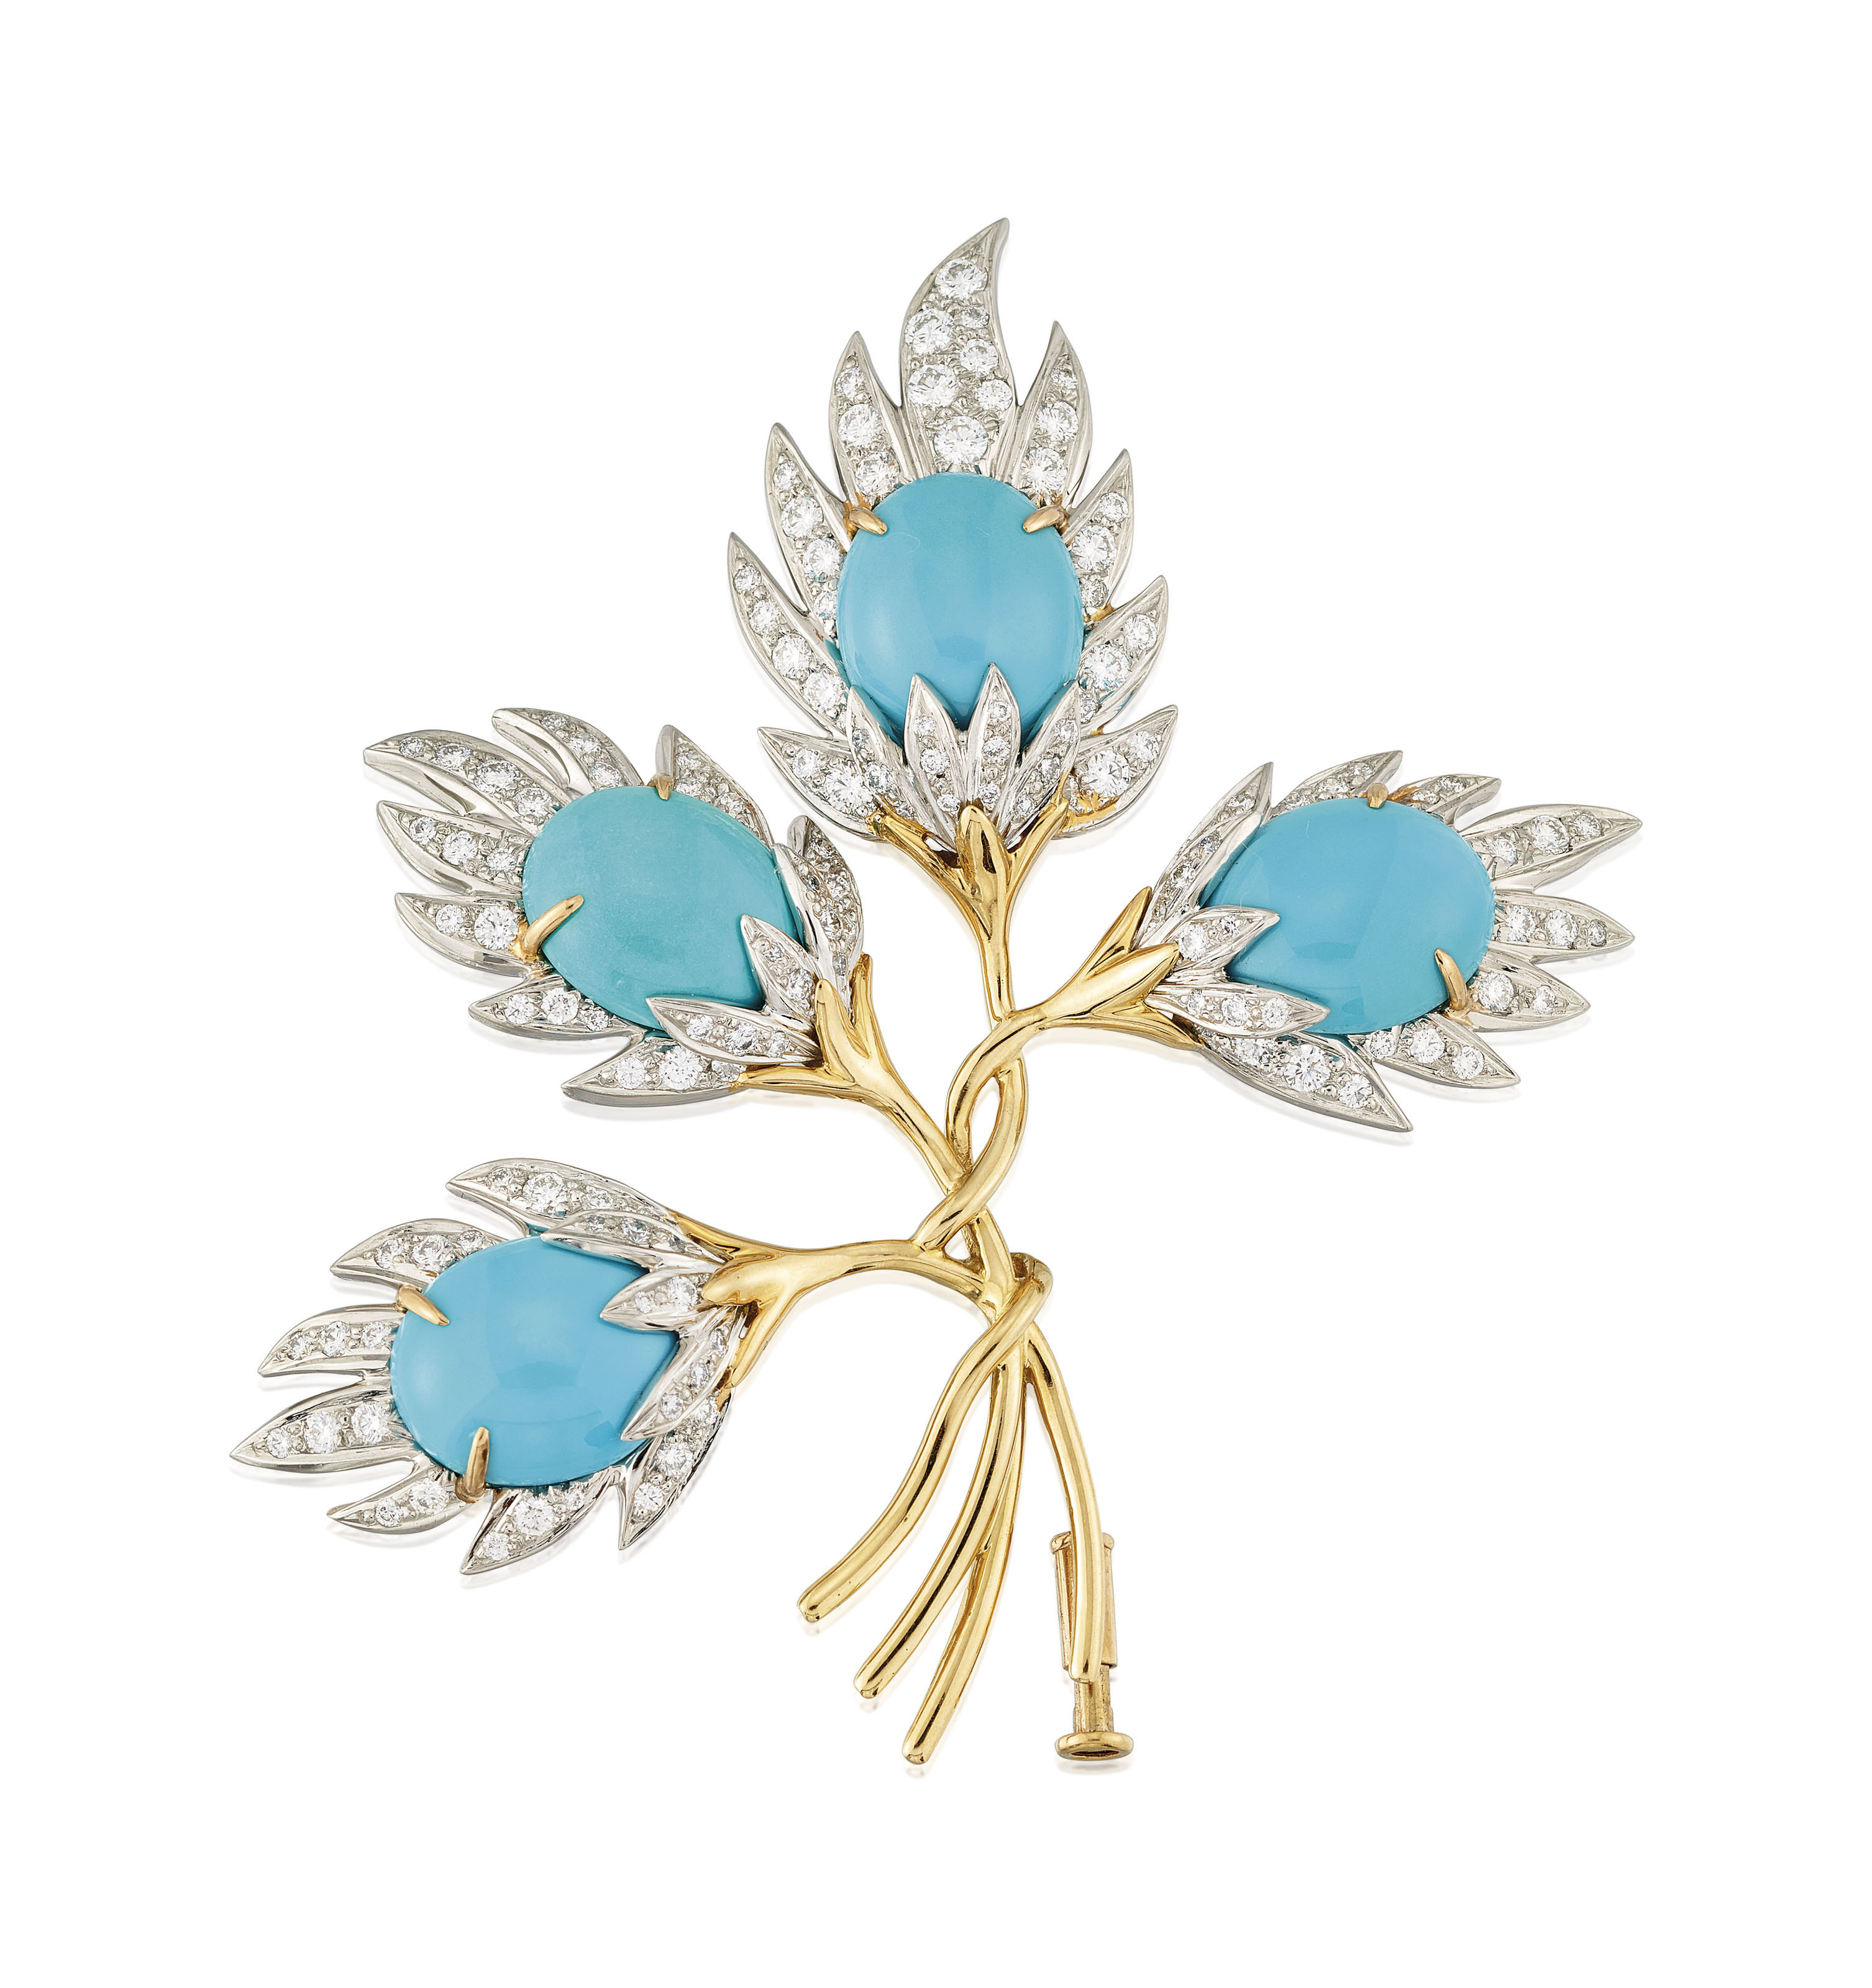 TURQUOISE AND DIAMOND BROOCH,